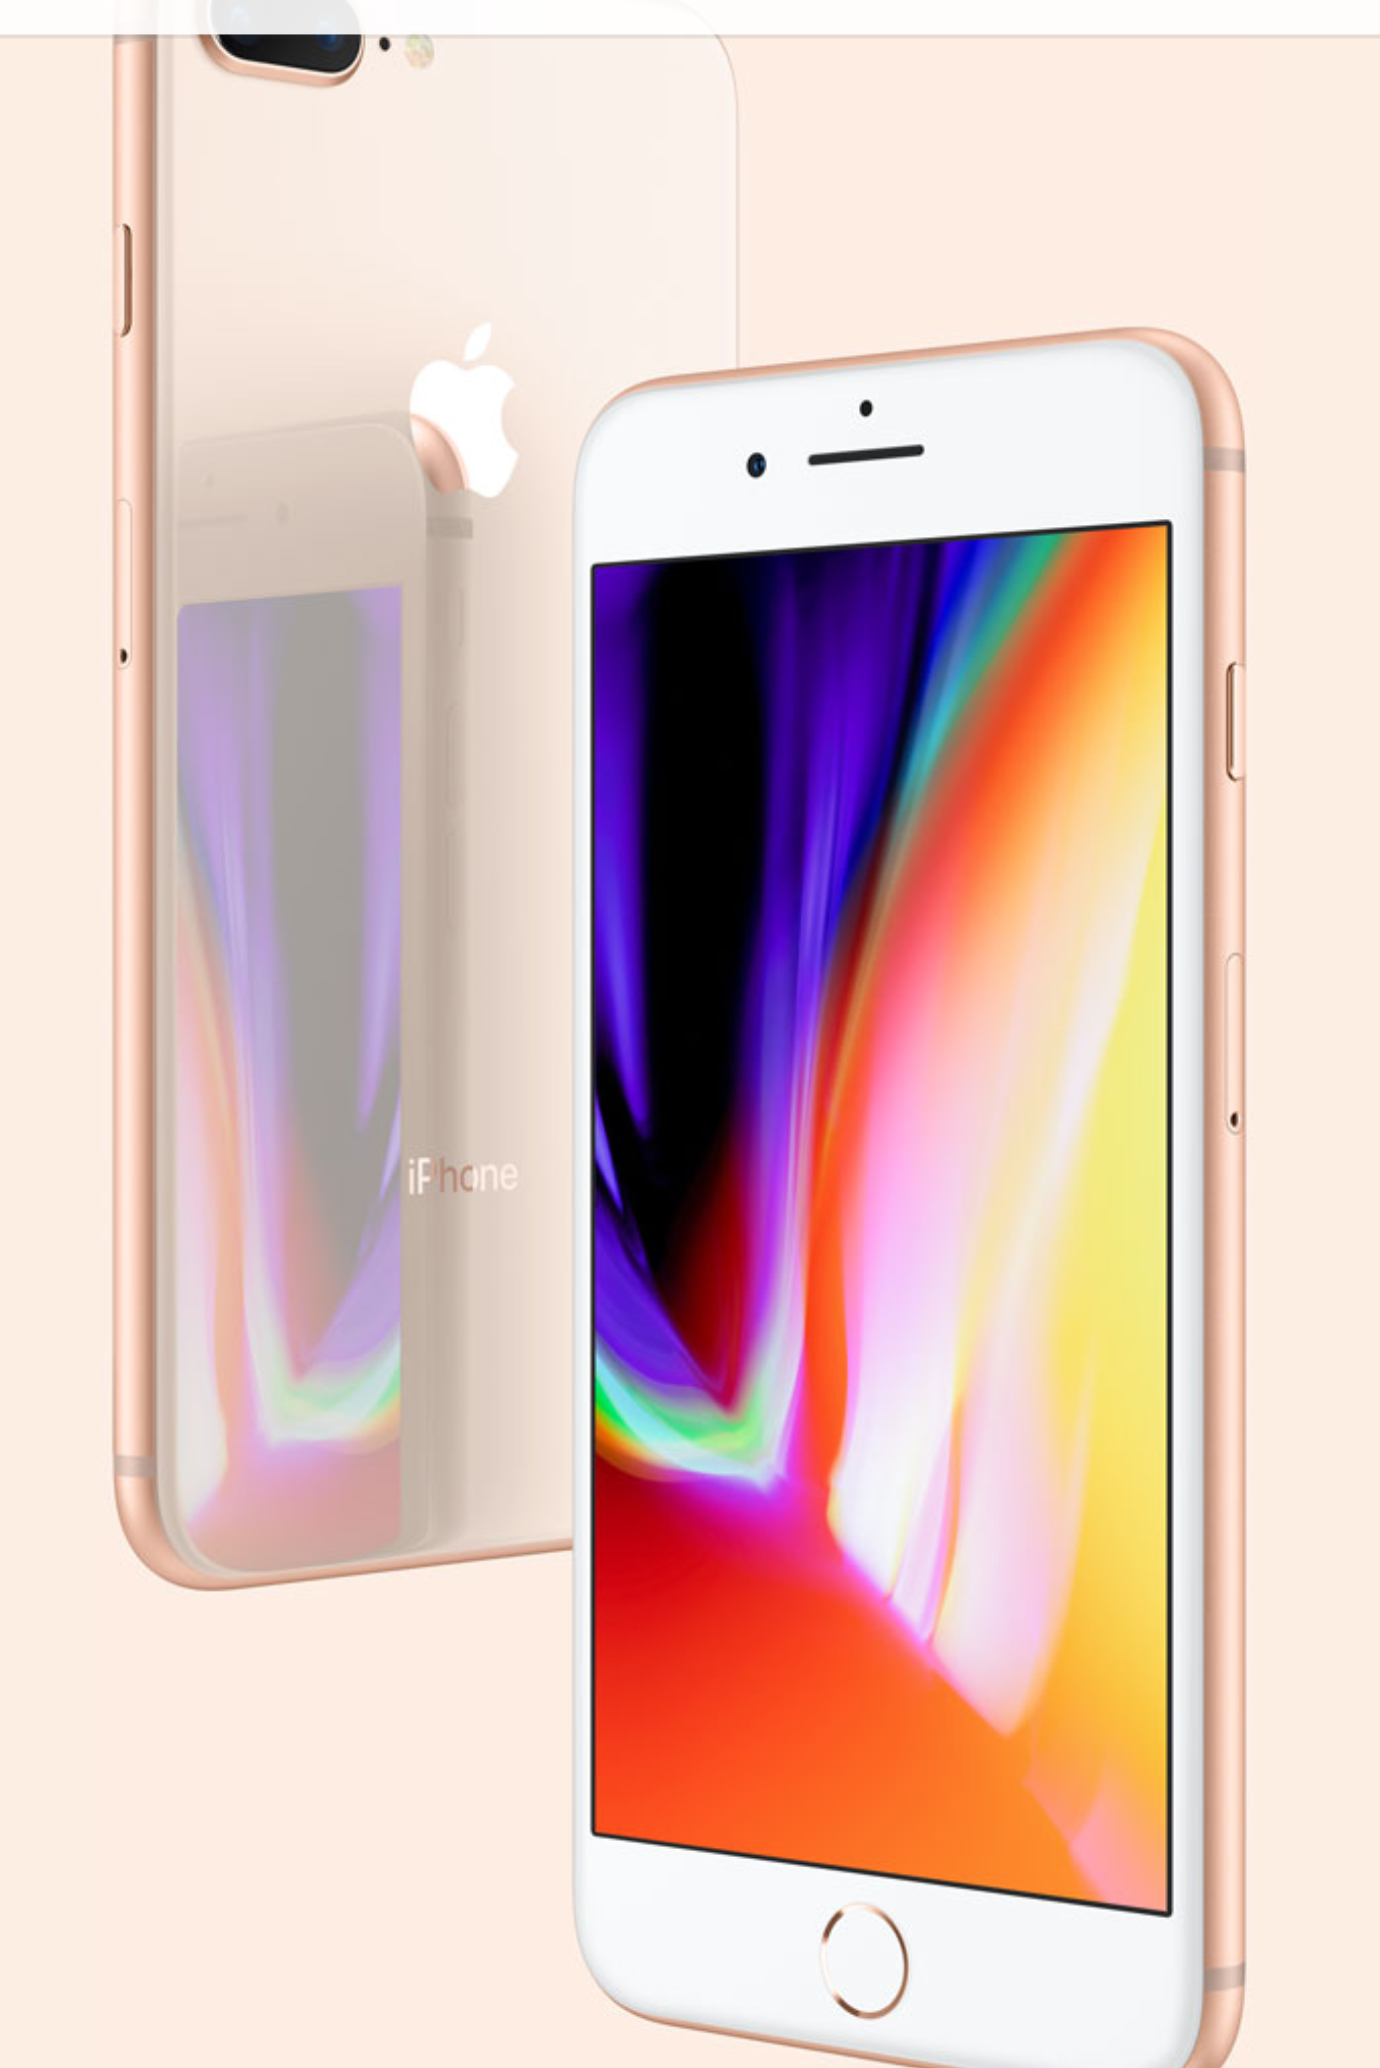 iphone X price Dubai with full specification - Dollar-pound com